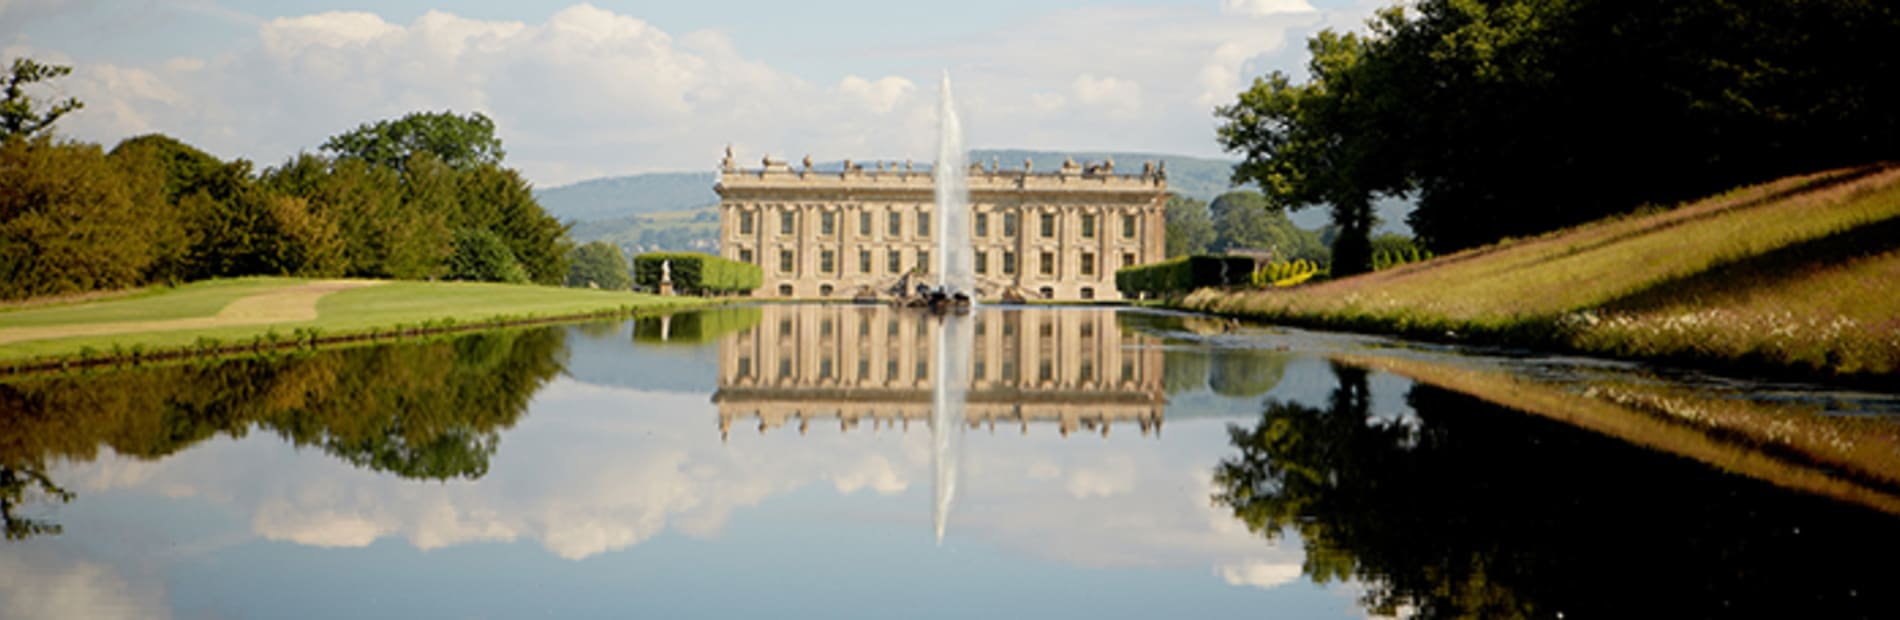 chatsworth house overlooking a lake.